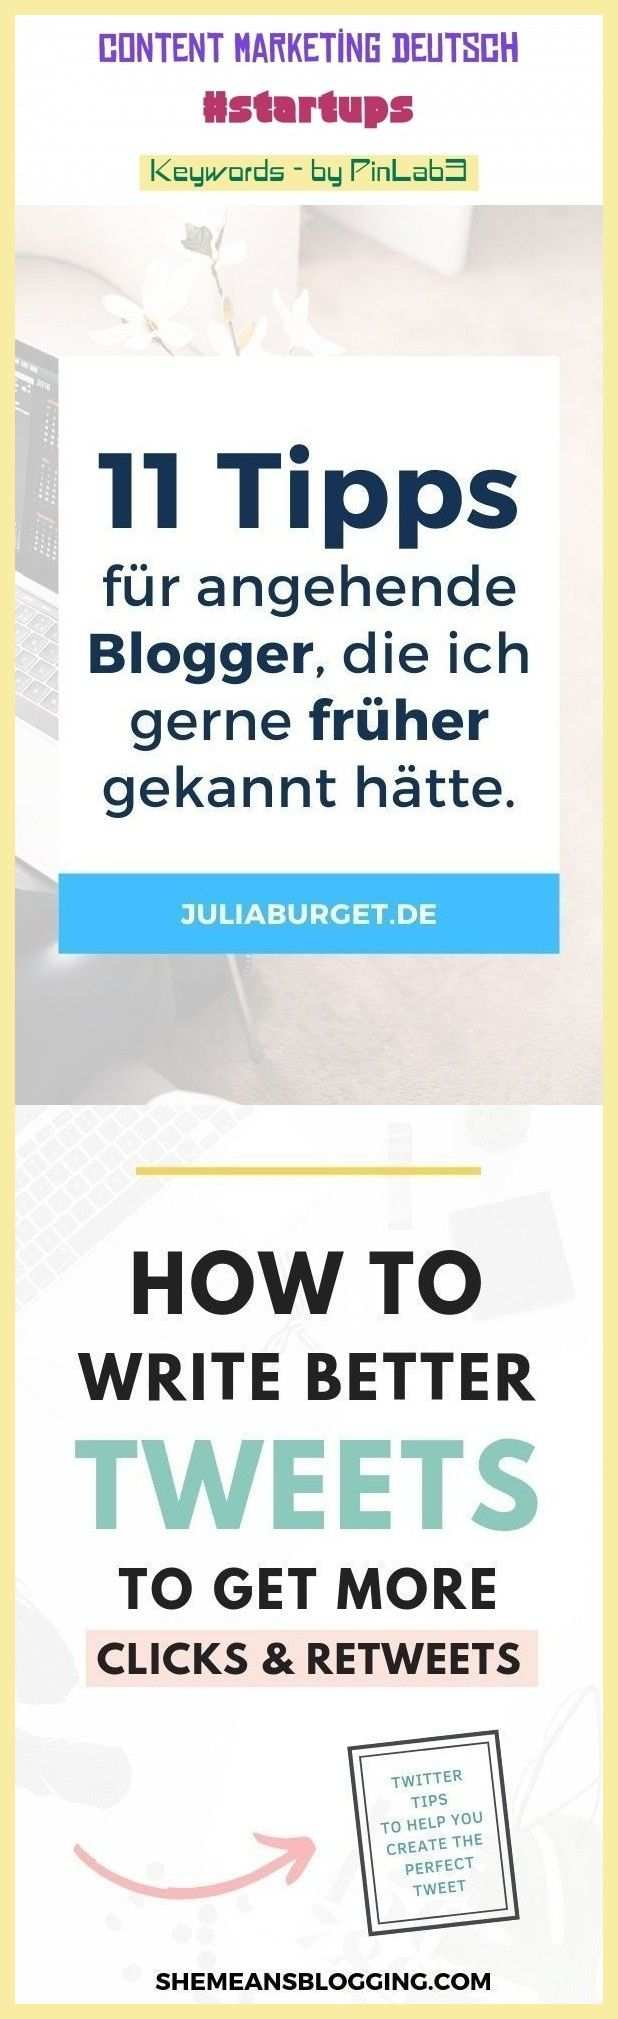 Content Marketing Deutsch Content Marketing Deutsch Contenu Content Marketing Deutsch Marketing In 2020 Infographic Marketing Content Marketing Marketing Poster